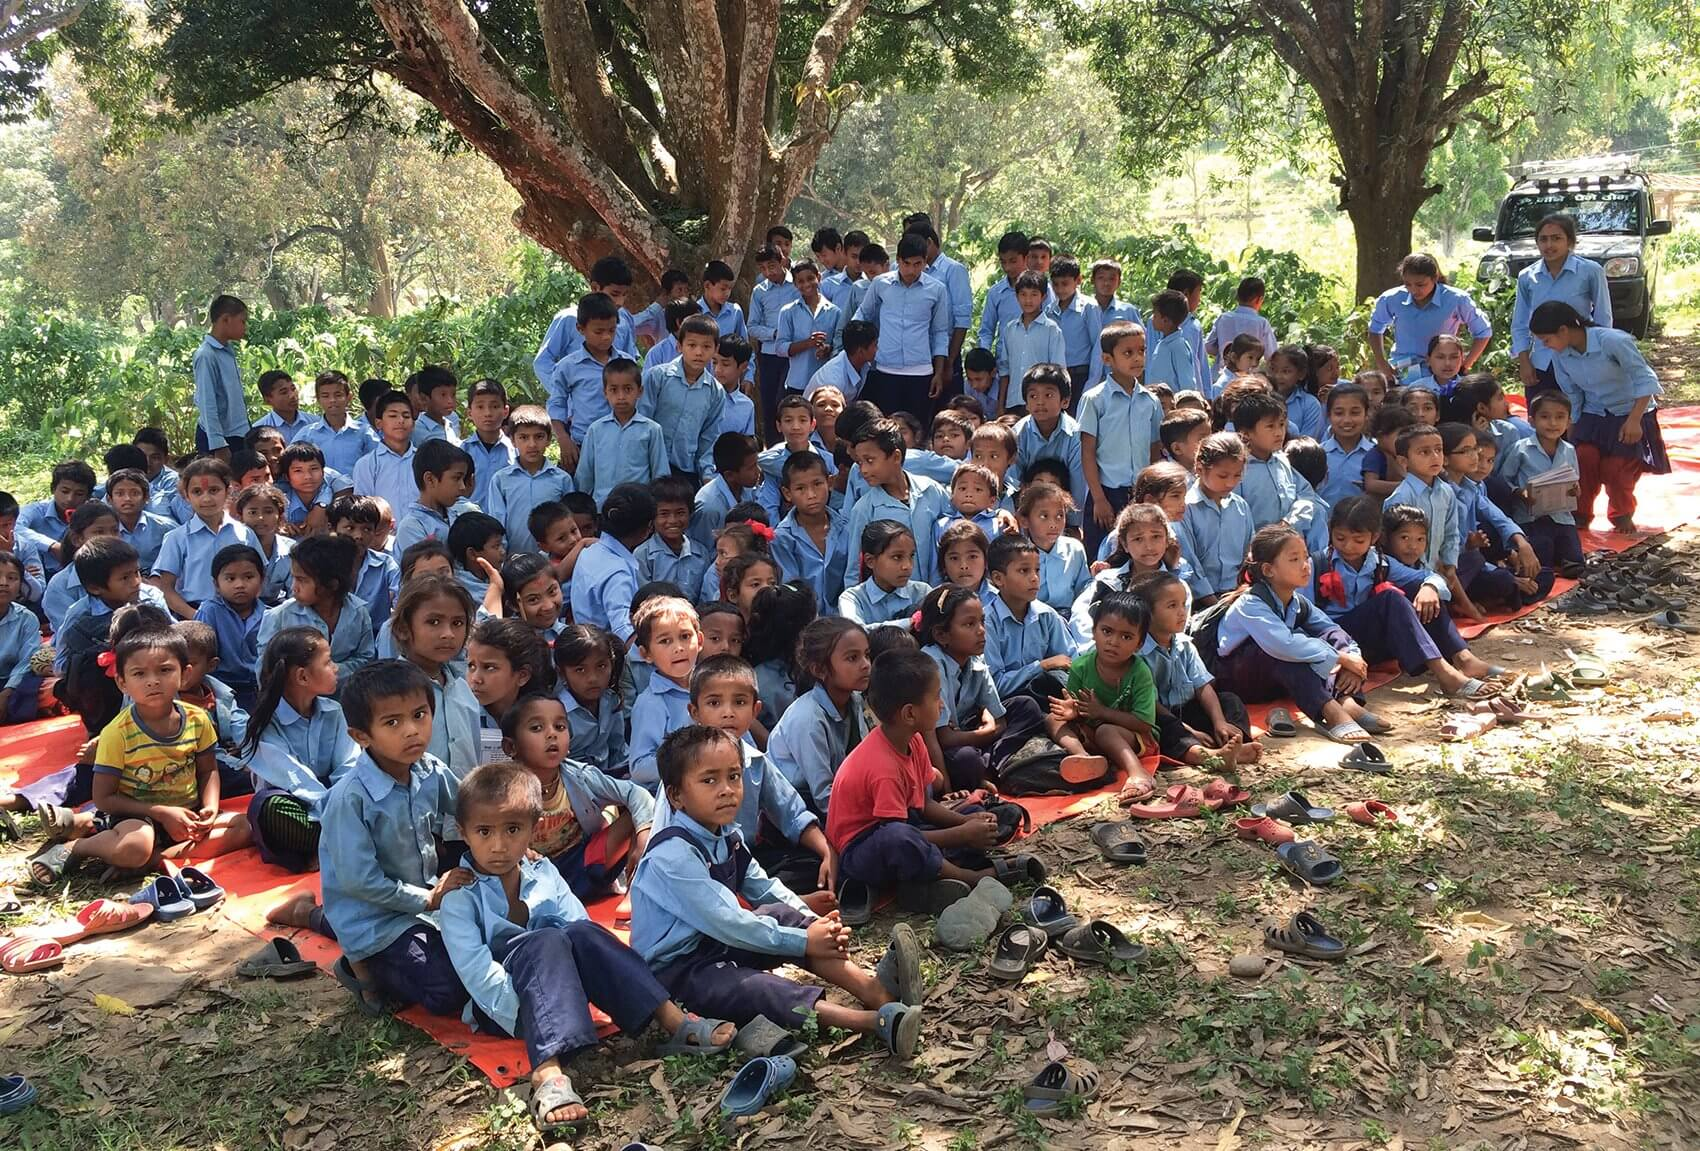 Students gather at a school in the Gorkha district of Nepal.